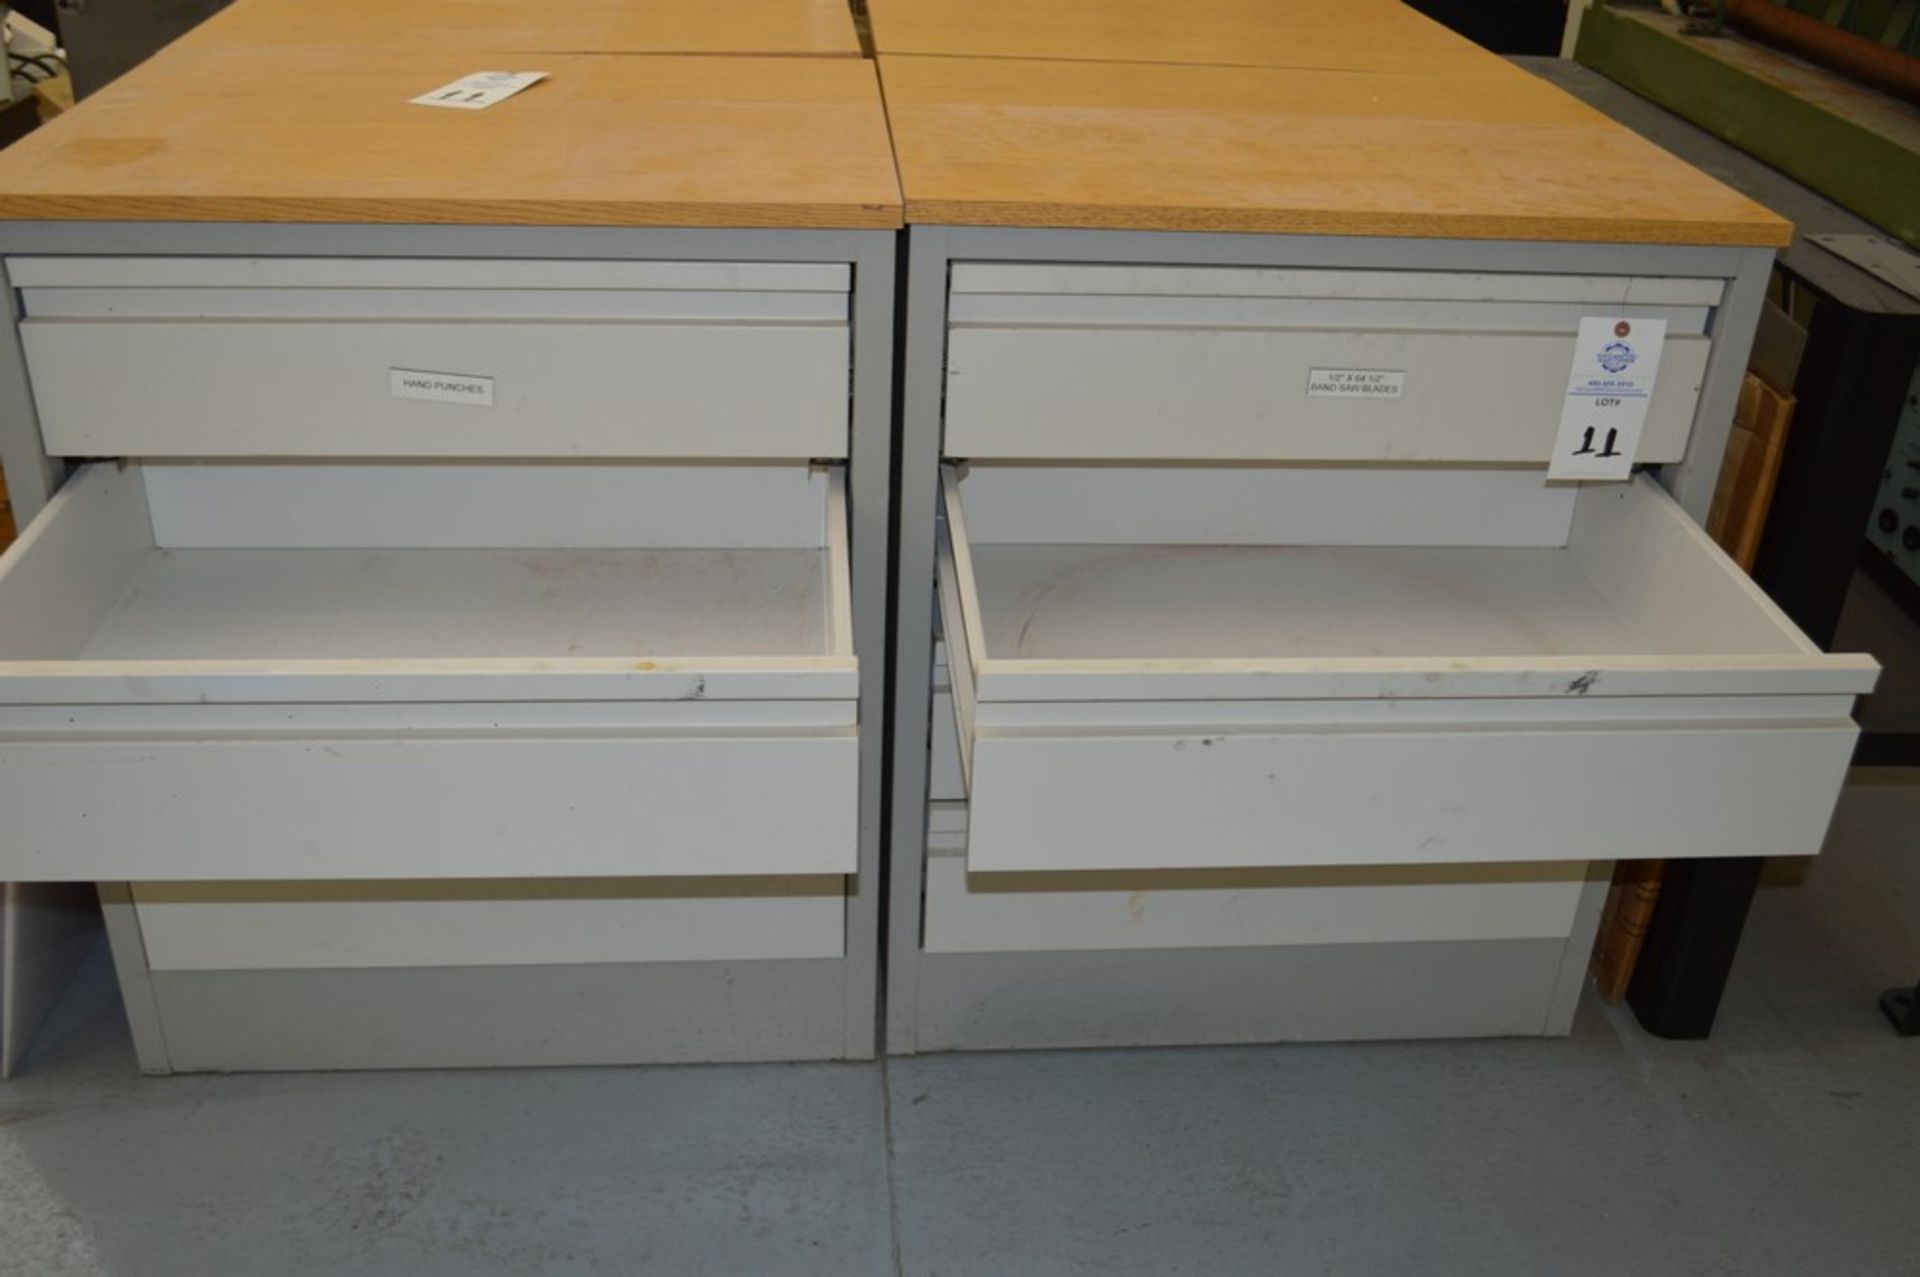 """(3) 4 Drawer Metal Cabinets with wood finished formica tops, 24"""" x 30.5"""", 36.5"""" Tall - Image 2 of 4"""